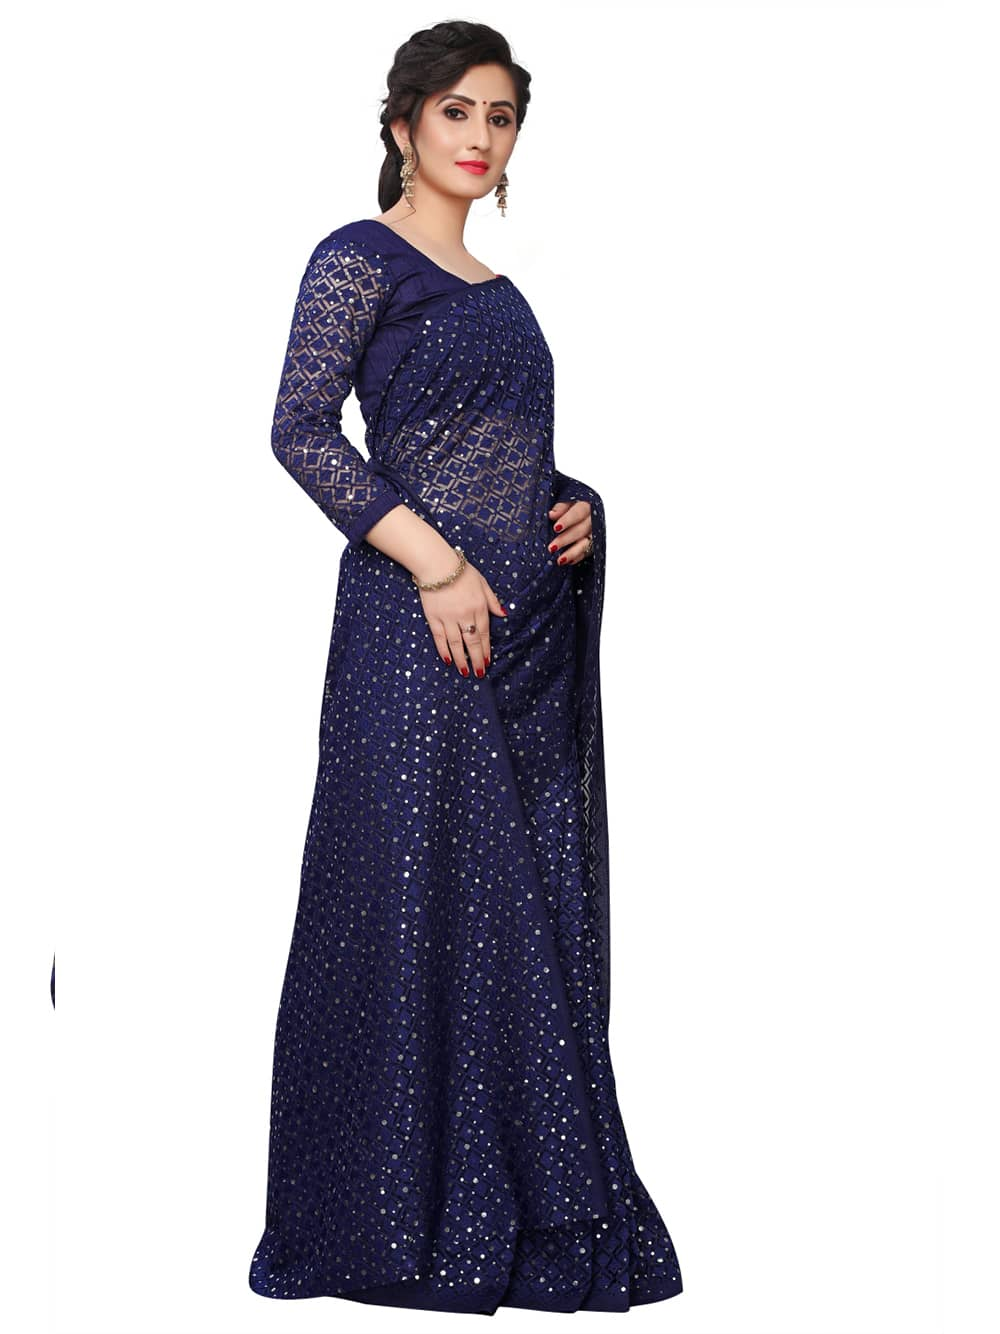 Women's Blue Soft Net Jacquard Saree with Beautiful Sequence work dvz0001370